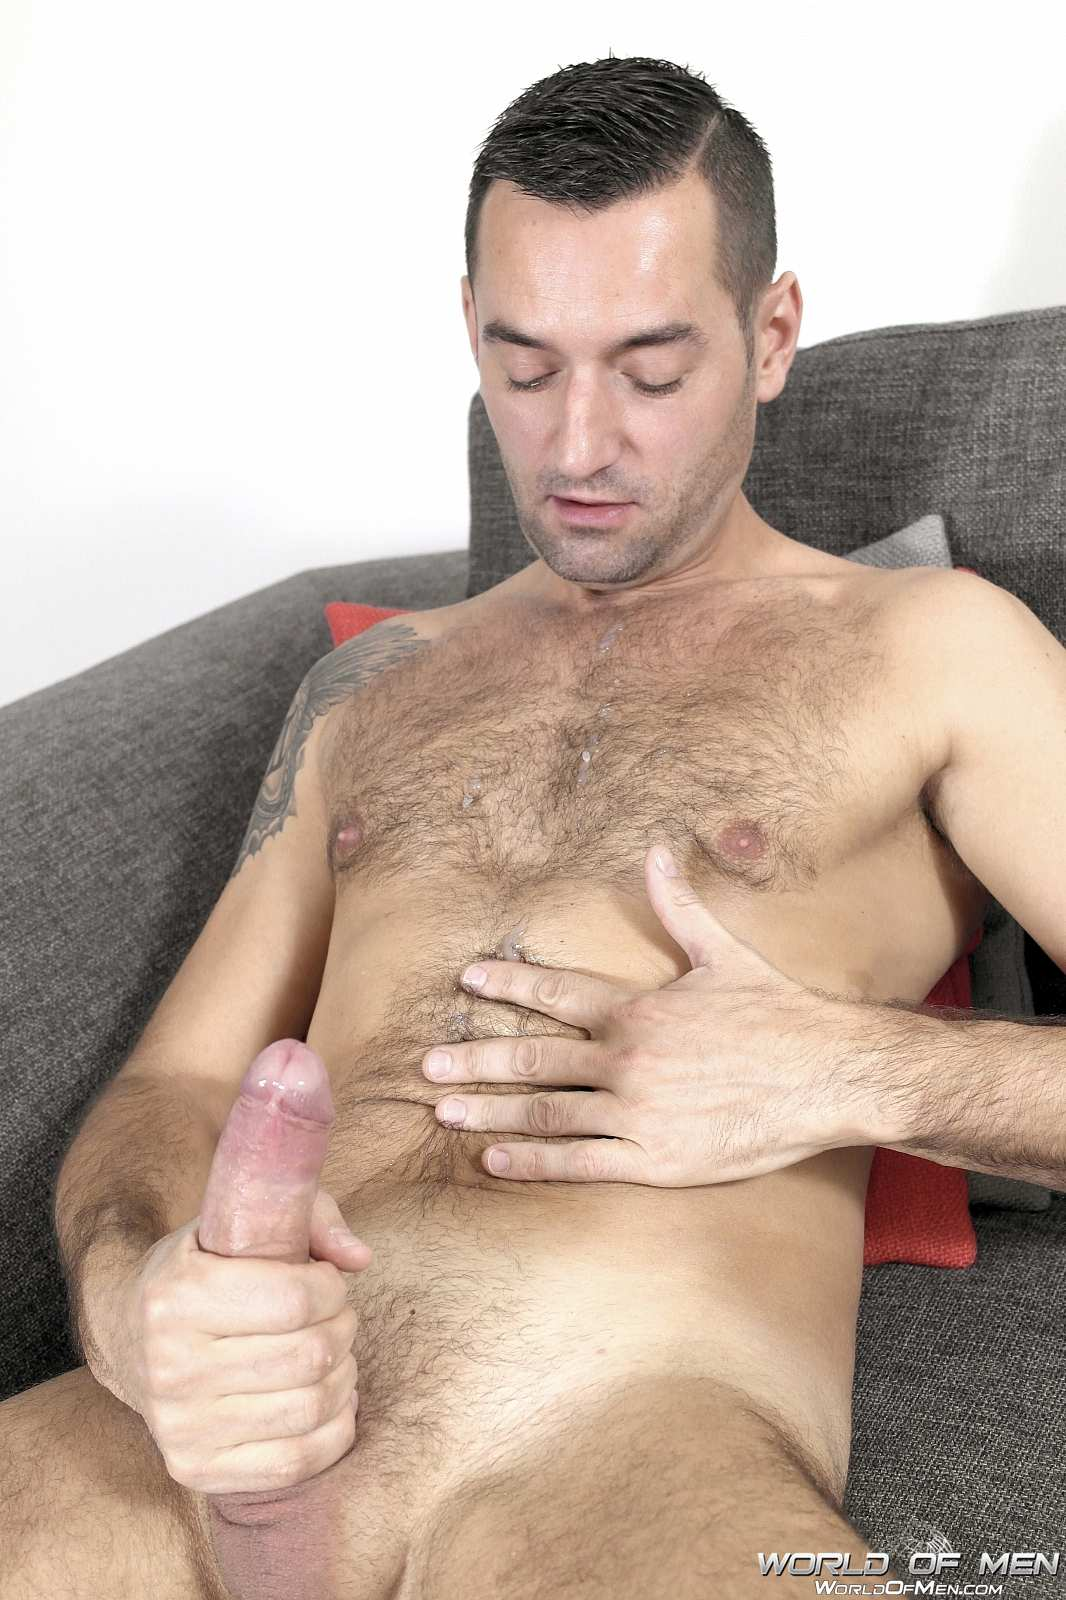 World-Of-Men-Chris-ADam-Big-Uncut-Cock-Jerk-Off-Masturbation-Amateur-Gay-Porn-07 Hairy Sexy Stud Fingers His Ass And Plays With His Huge Uncut Cock